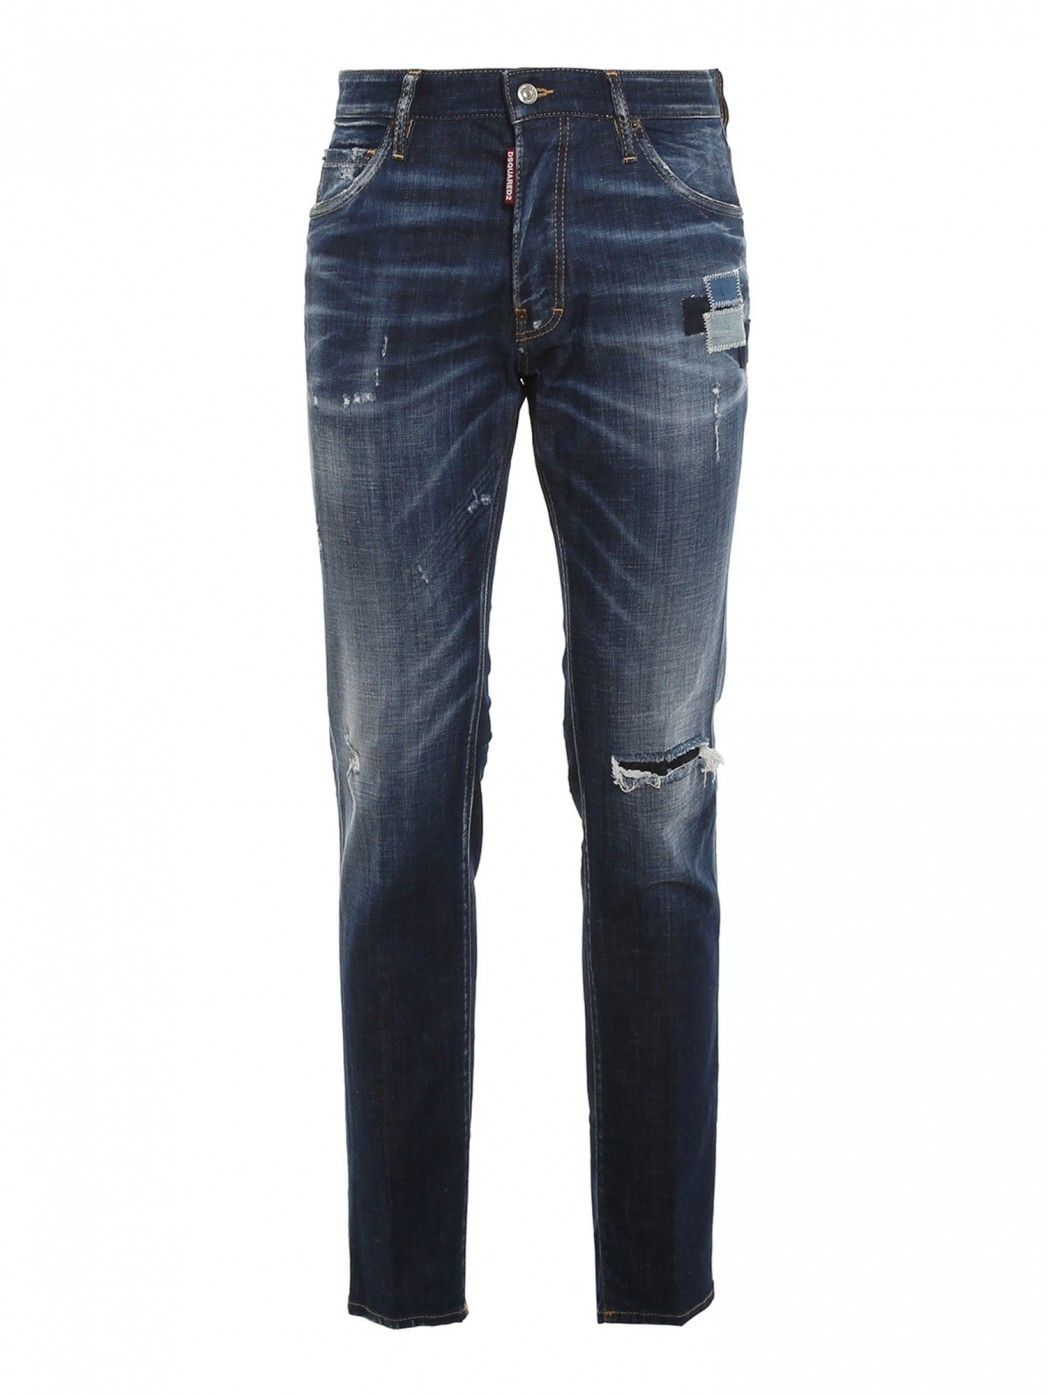 COLL GUY JEAN DSQUARED2...